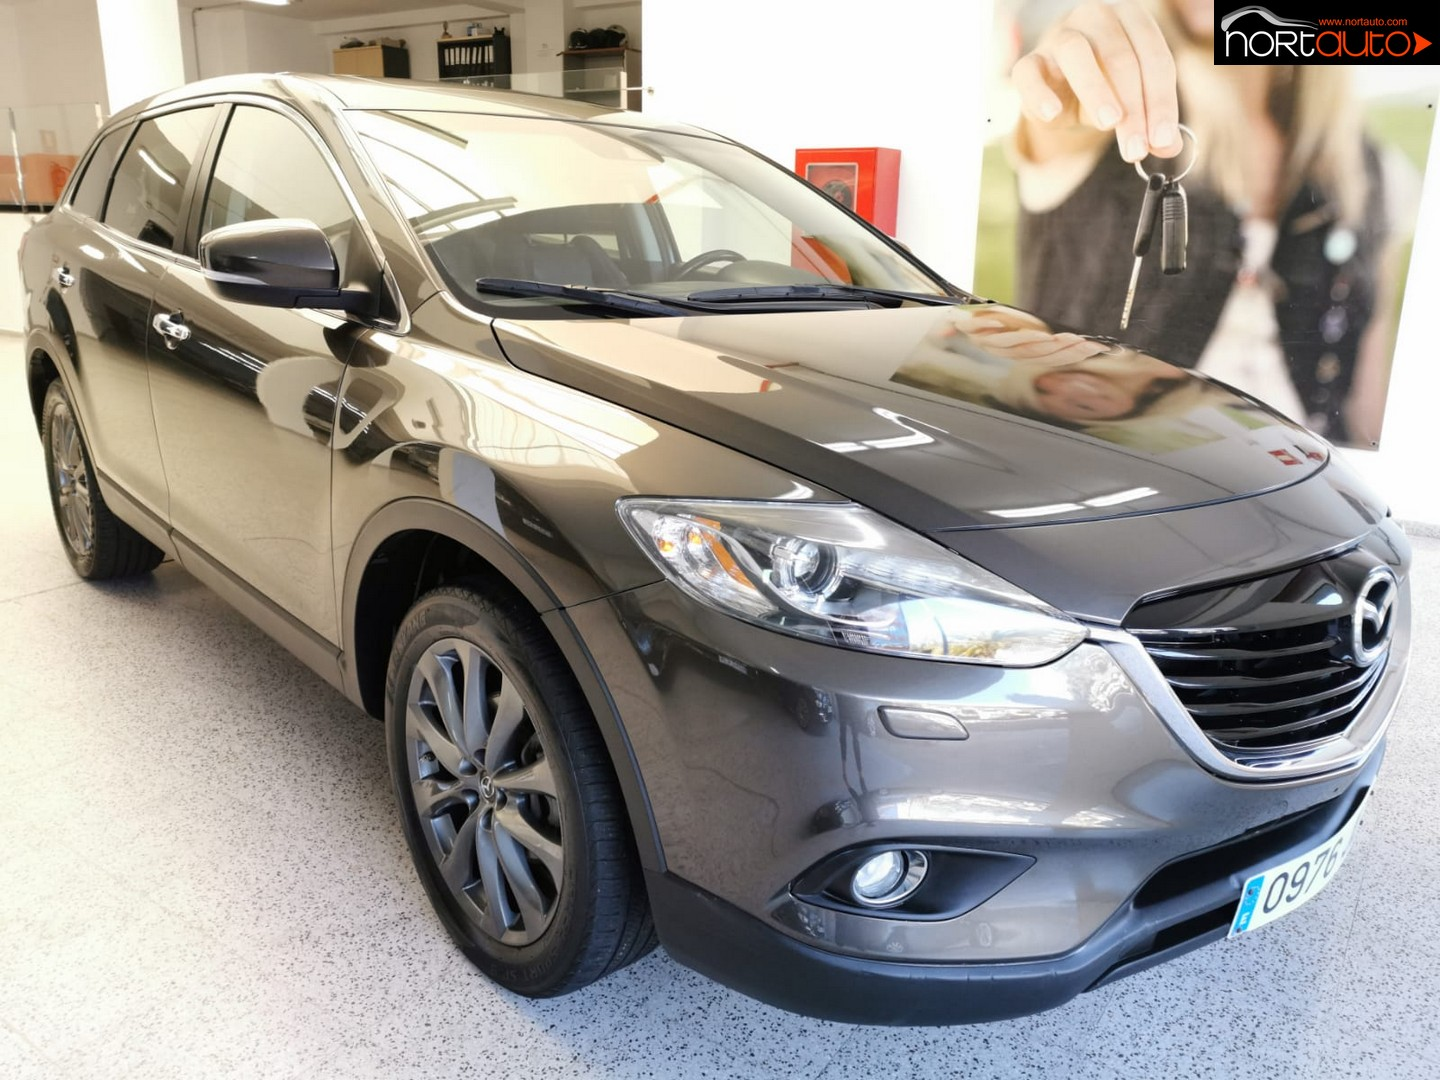 MAZDA CX9 3.7 275cv 6AT 4WD Luxury